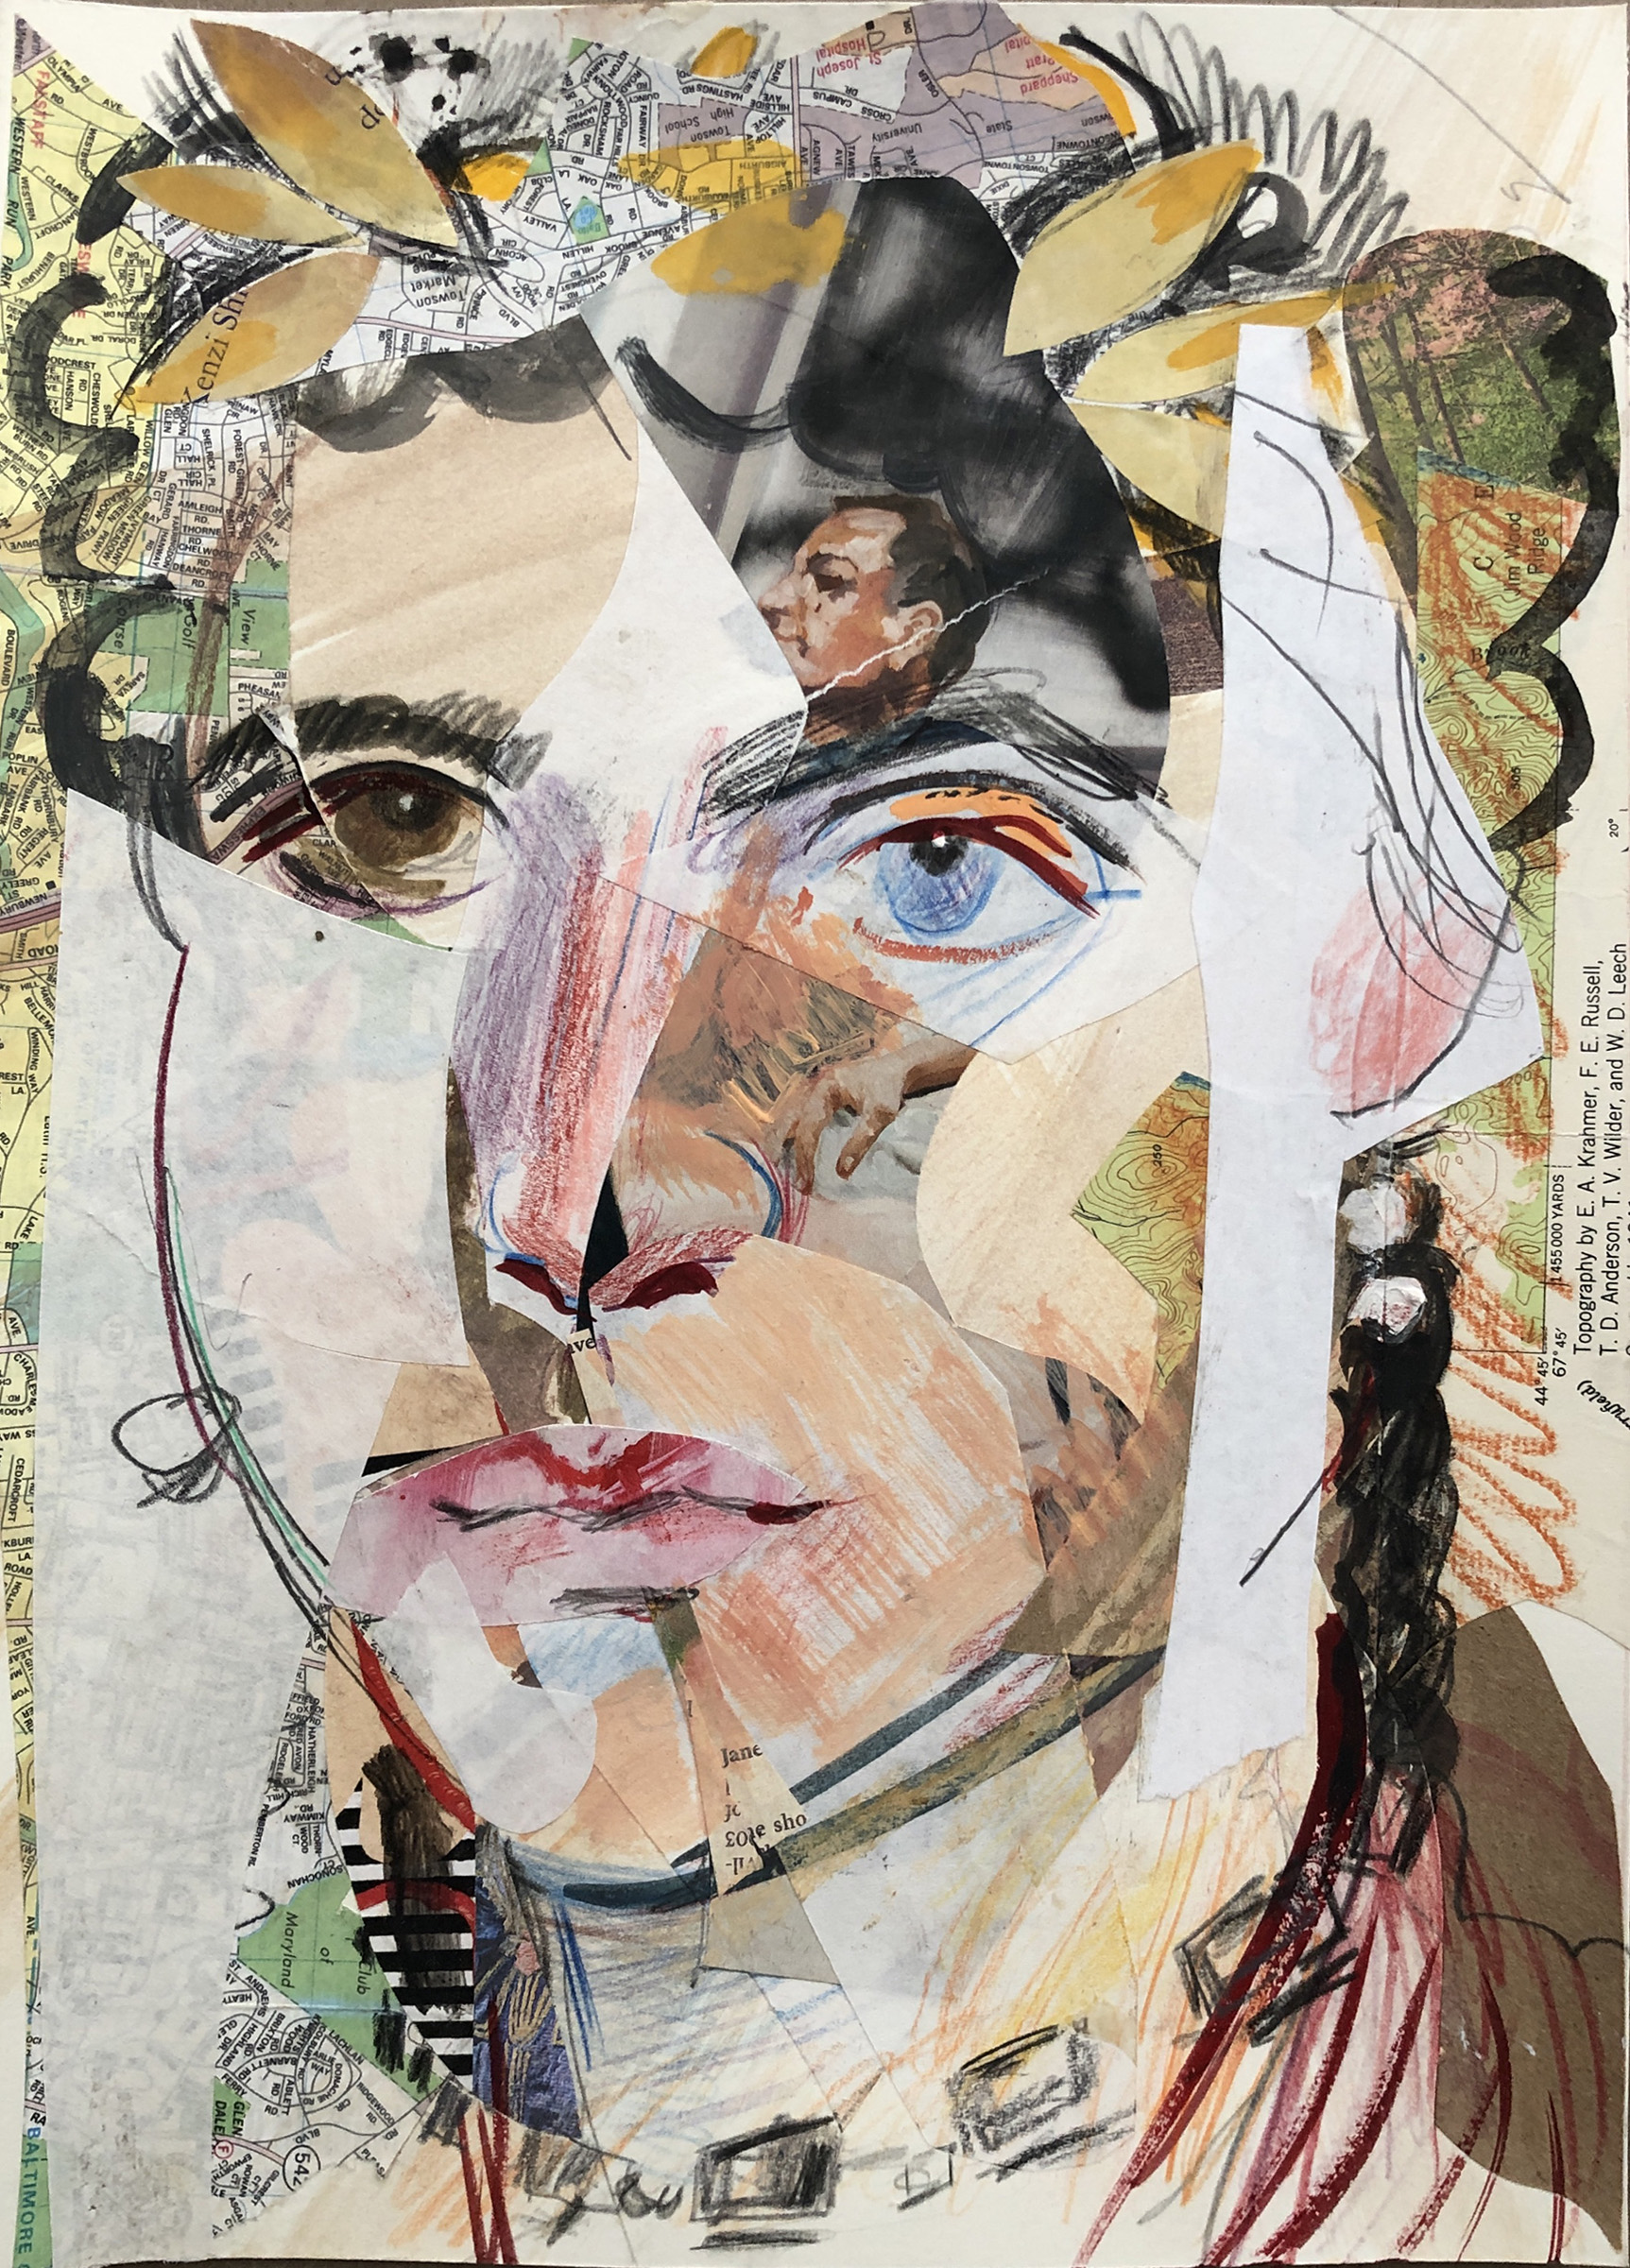 SITE-untitled collage of face, no date-1014?.jpg